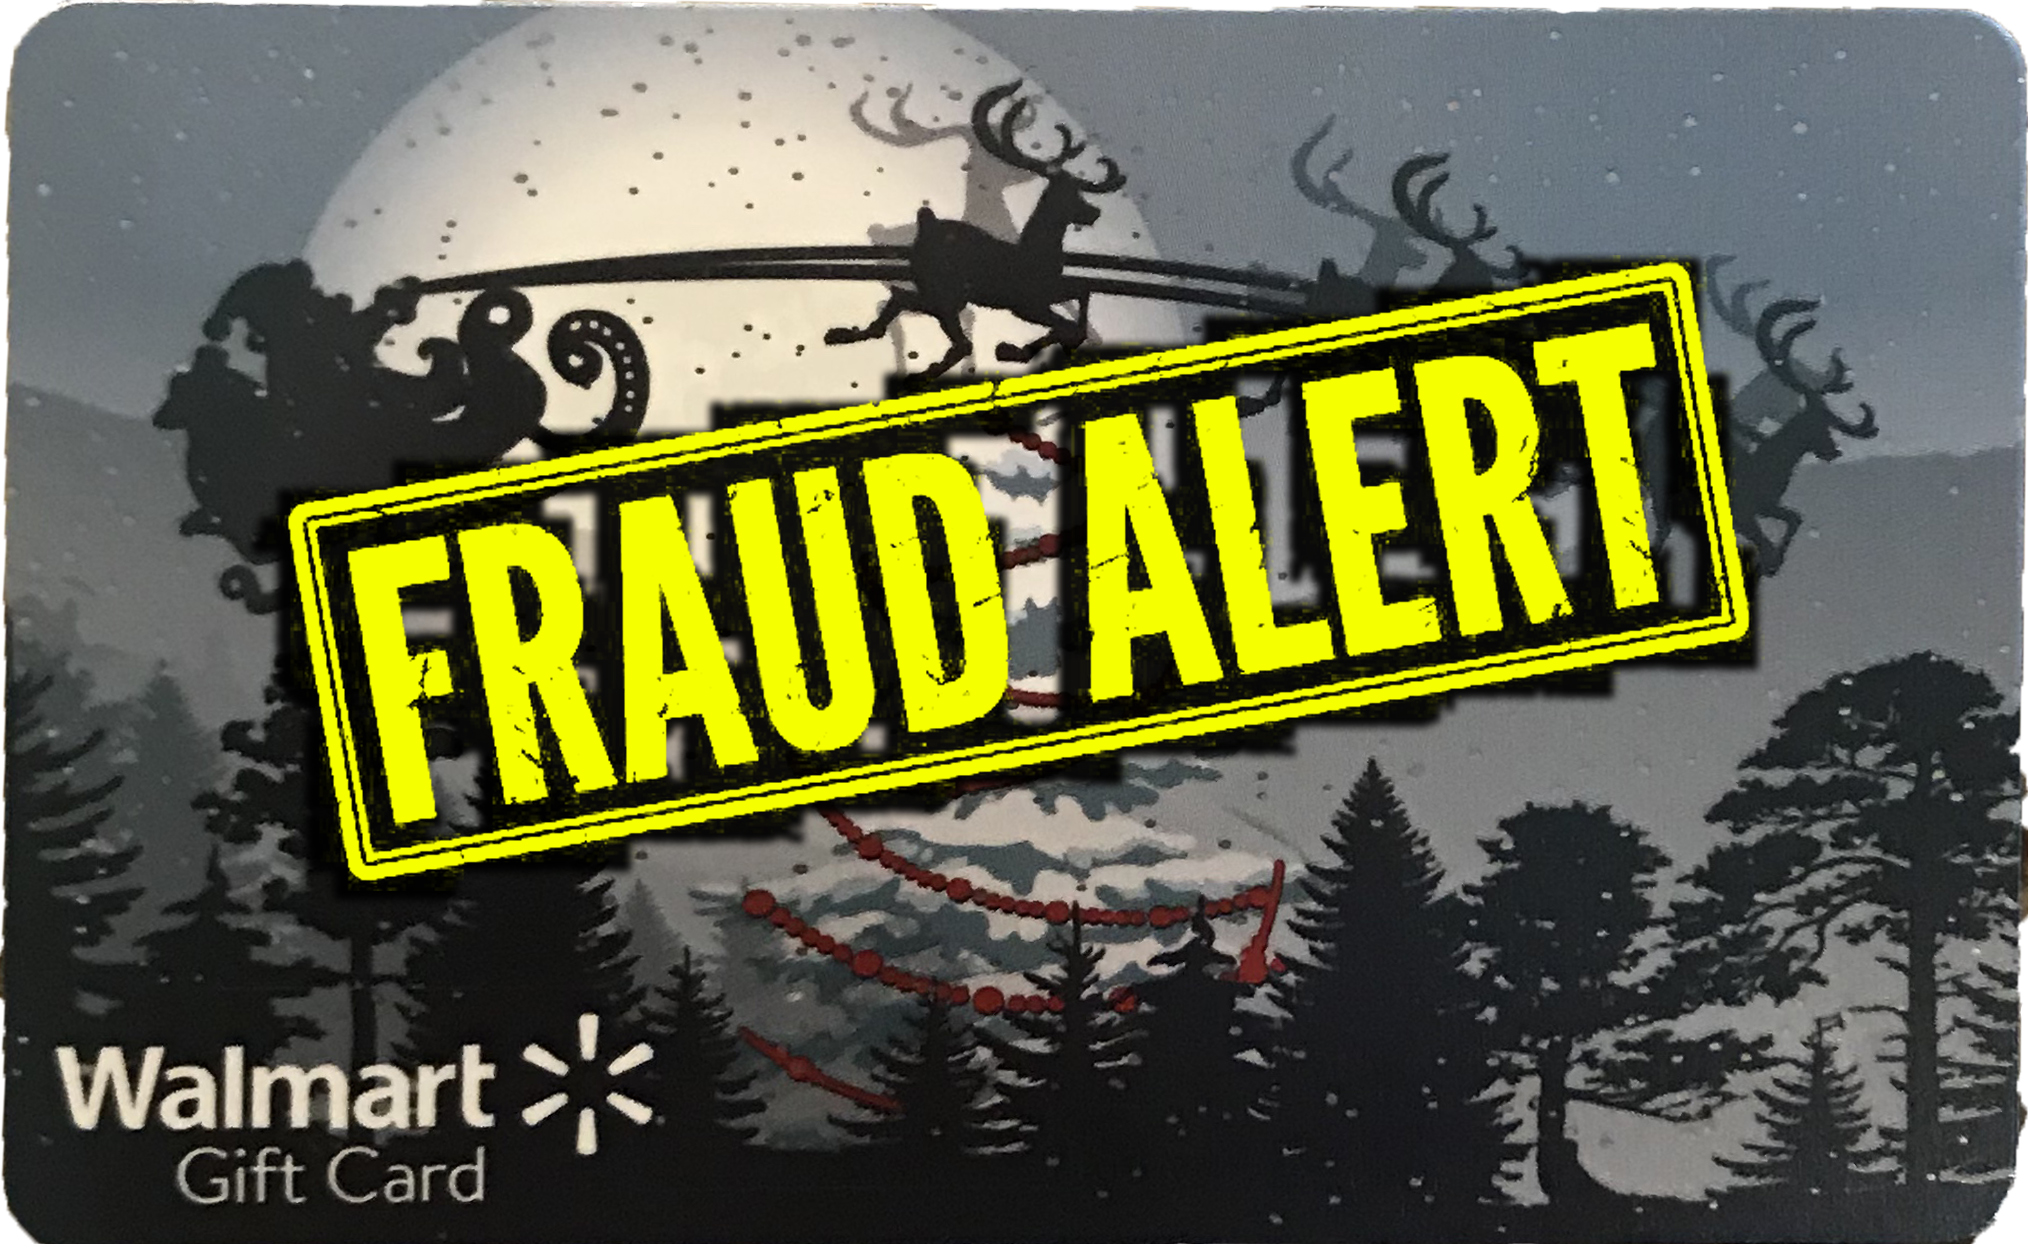 The Walmart Gift Card Fraud Scam That Doesnt Care To Fix Store 9115 RD